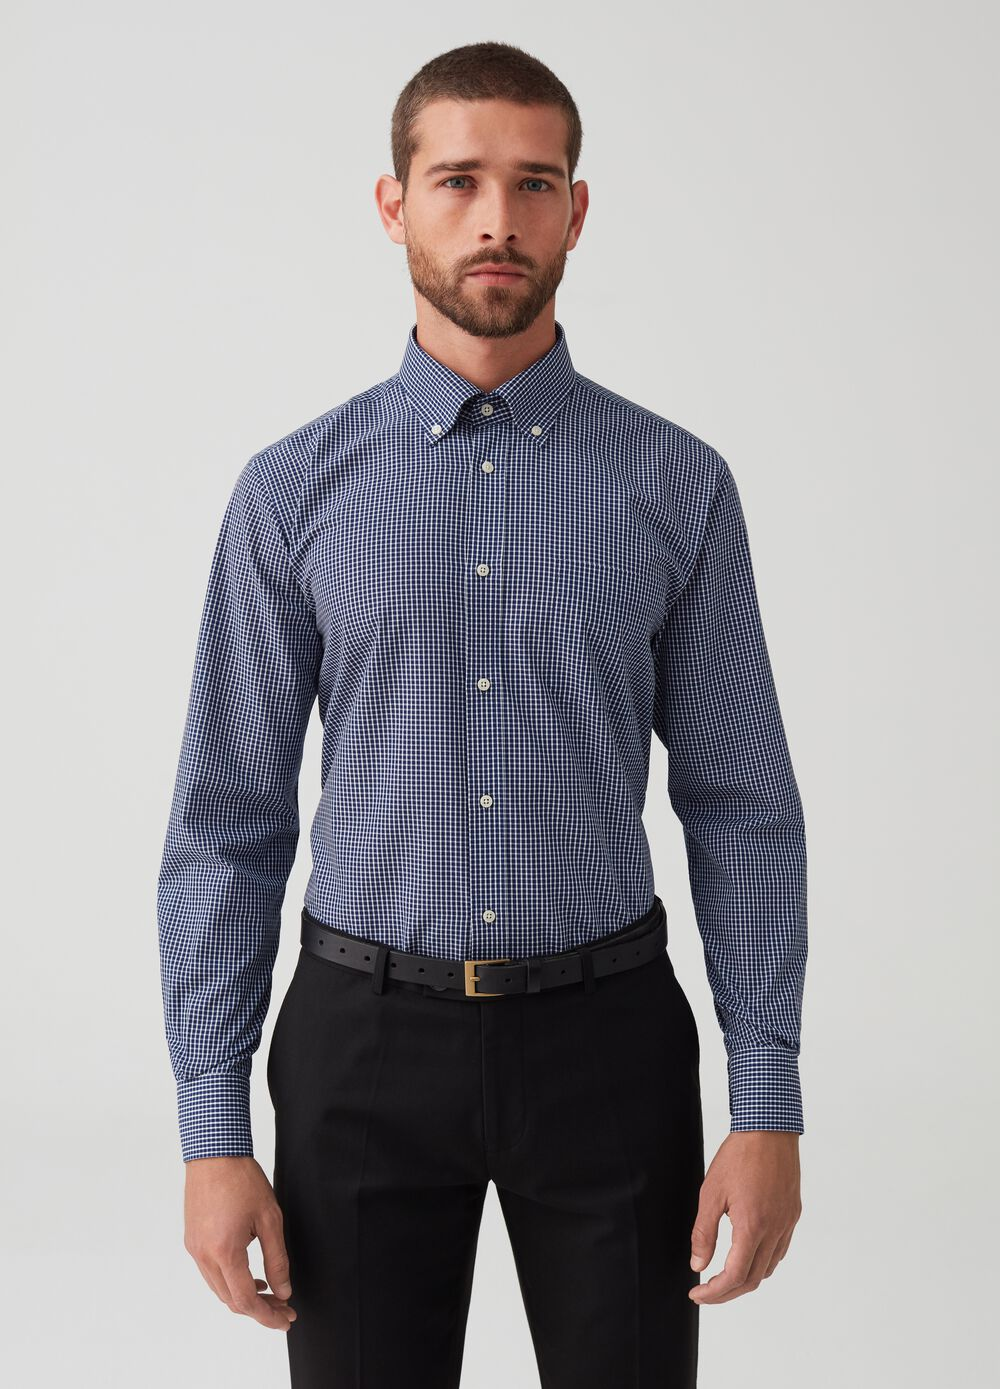 Regular fit shirt with check pattern